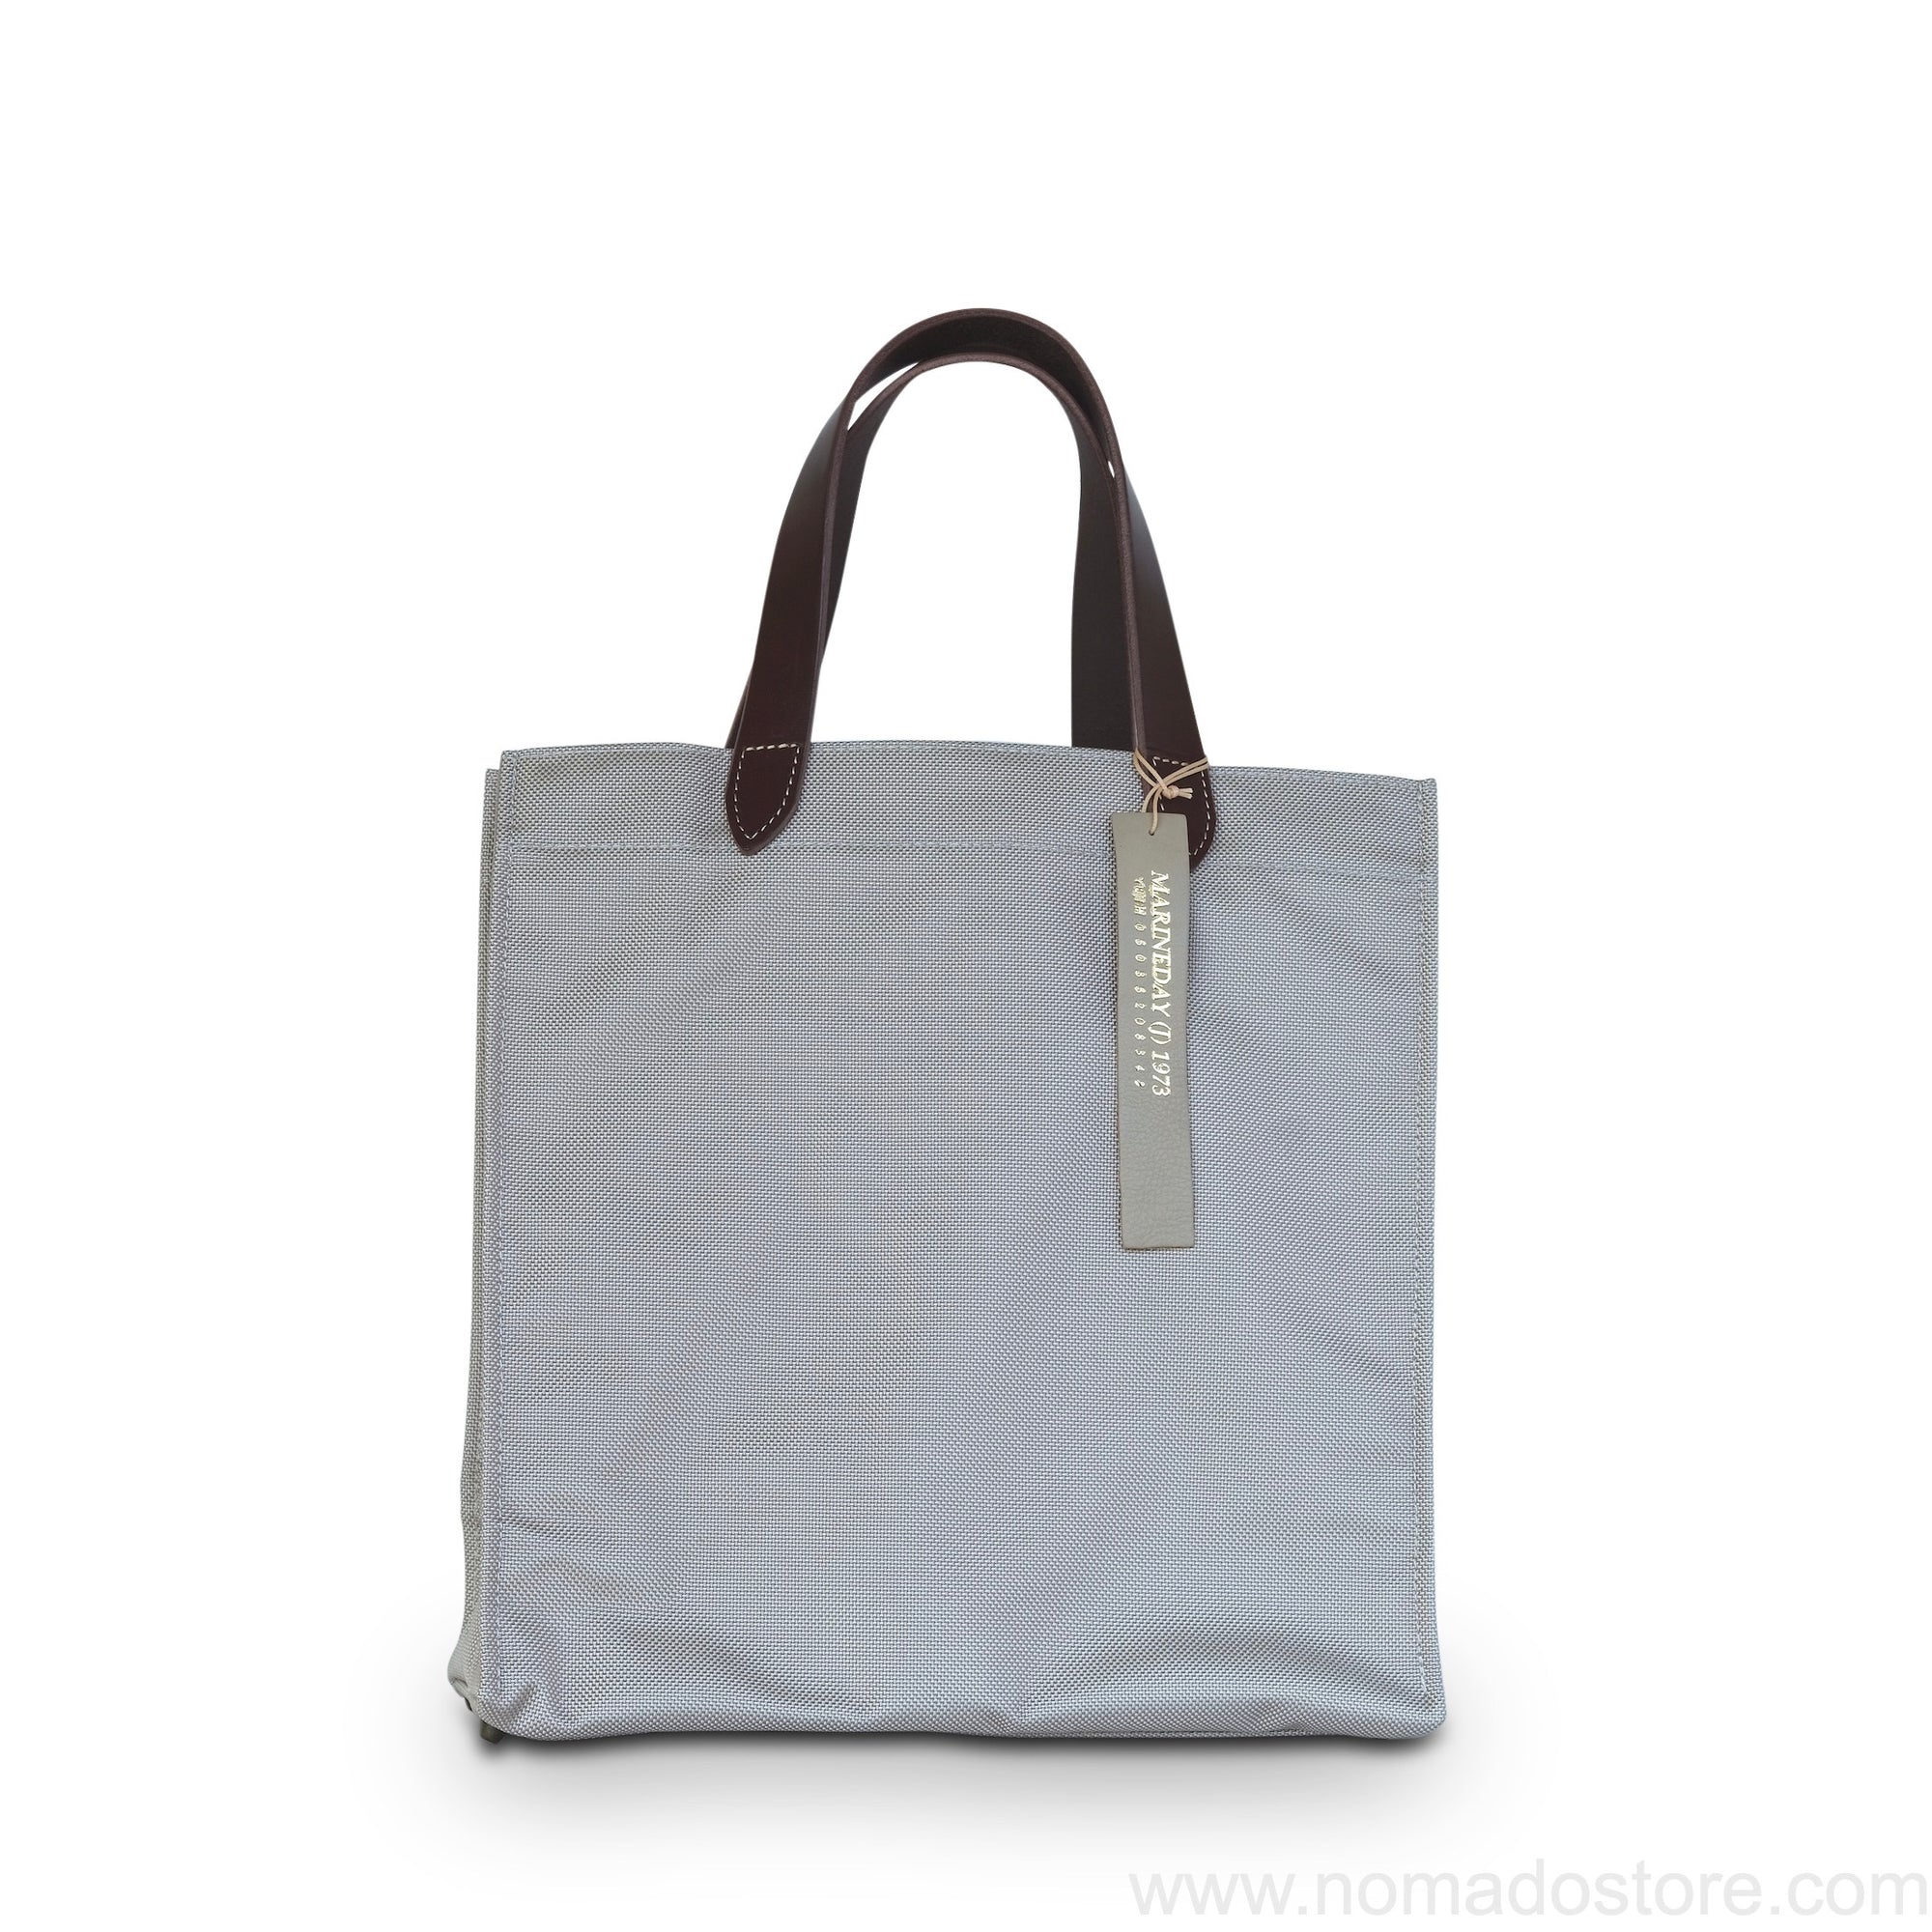 Marineday Flow 66 Nylon Tote Bag (Greige) - NOMADO Store